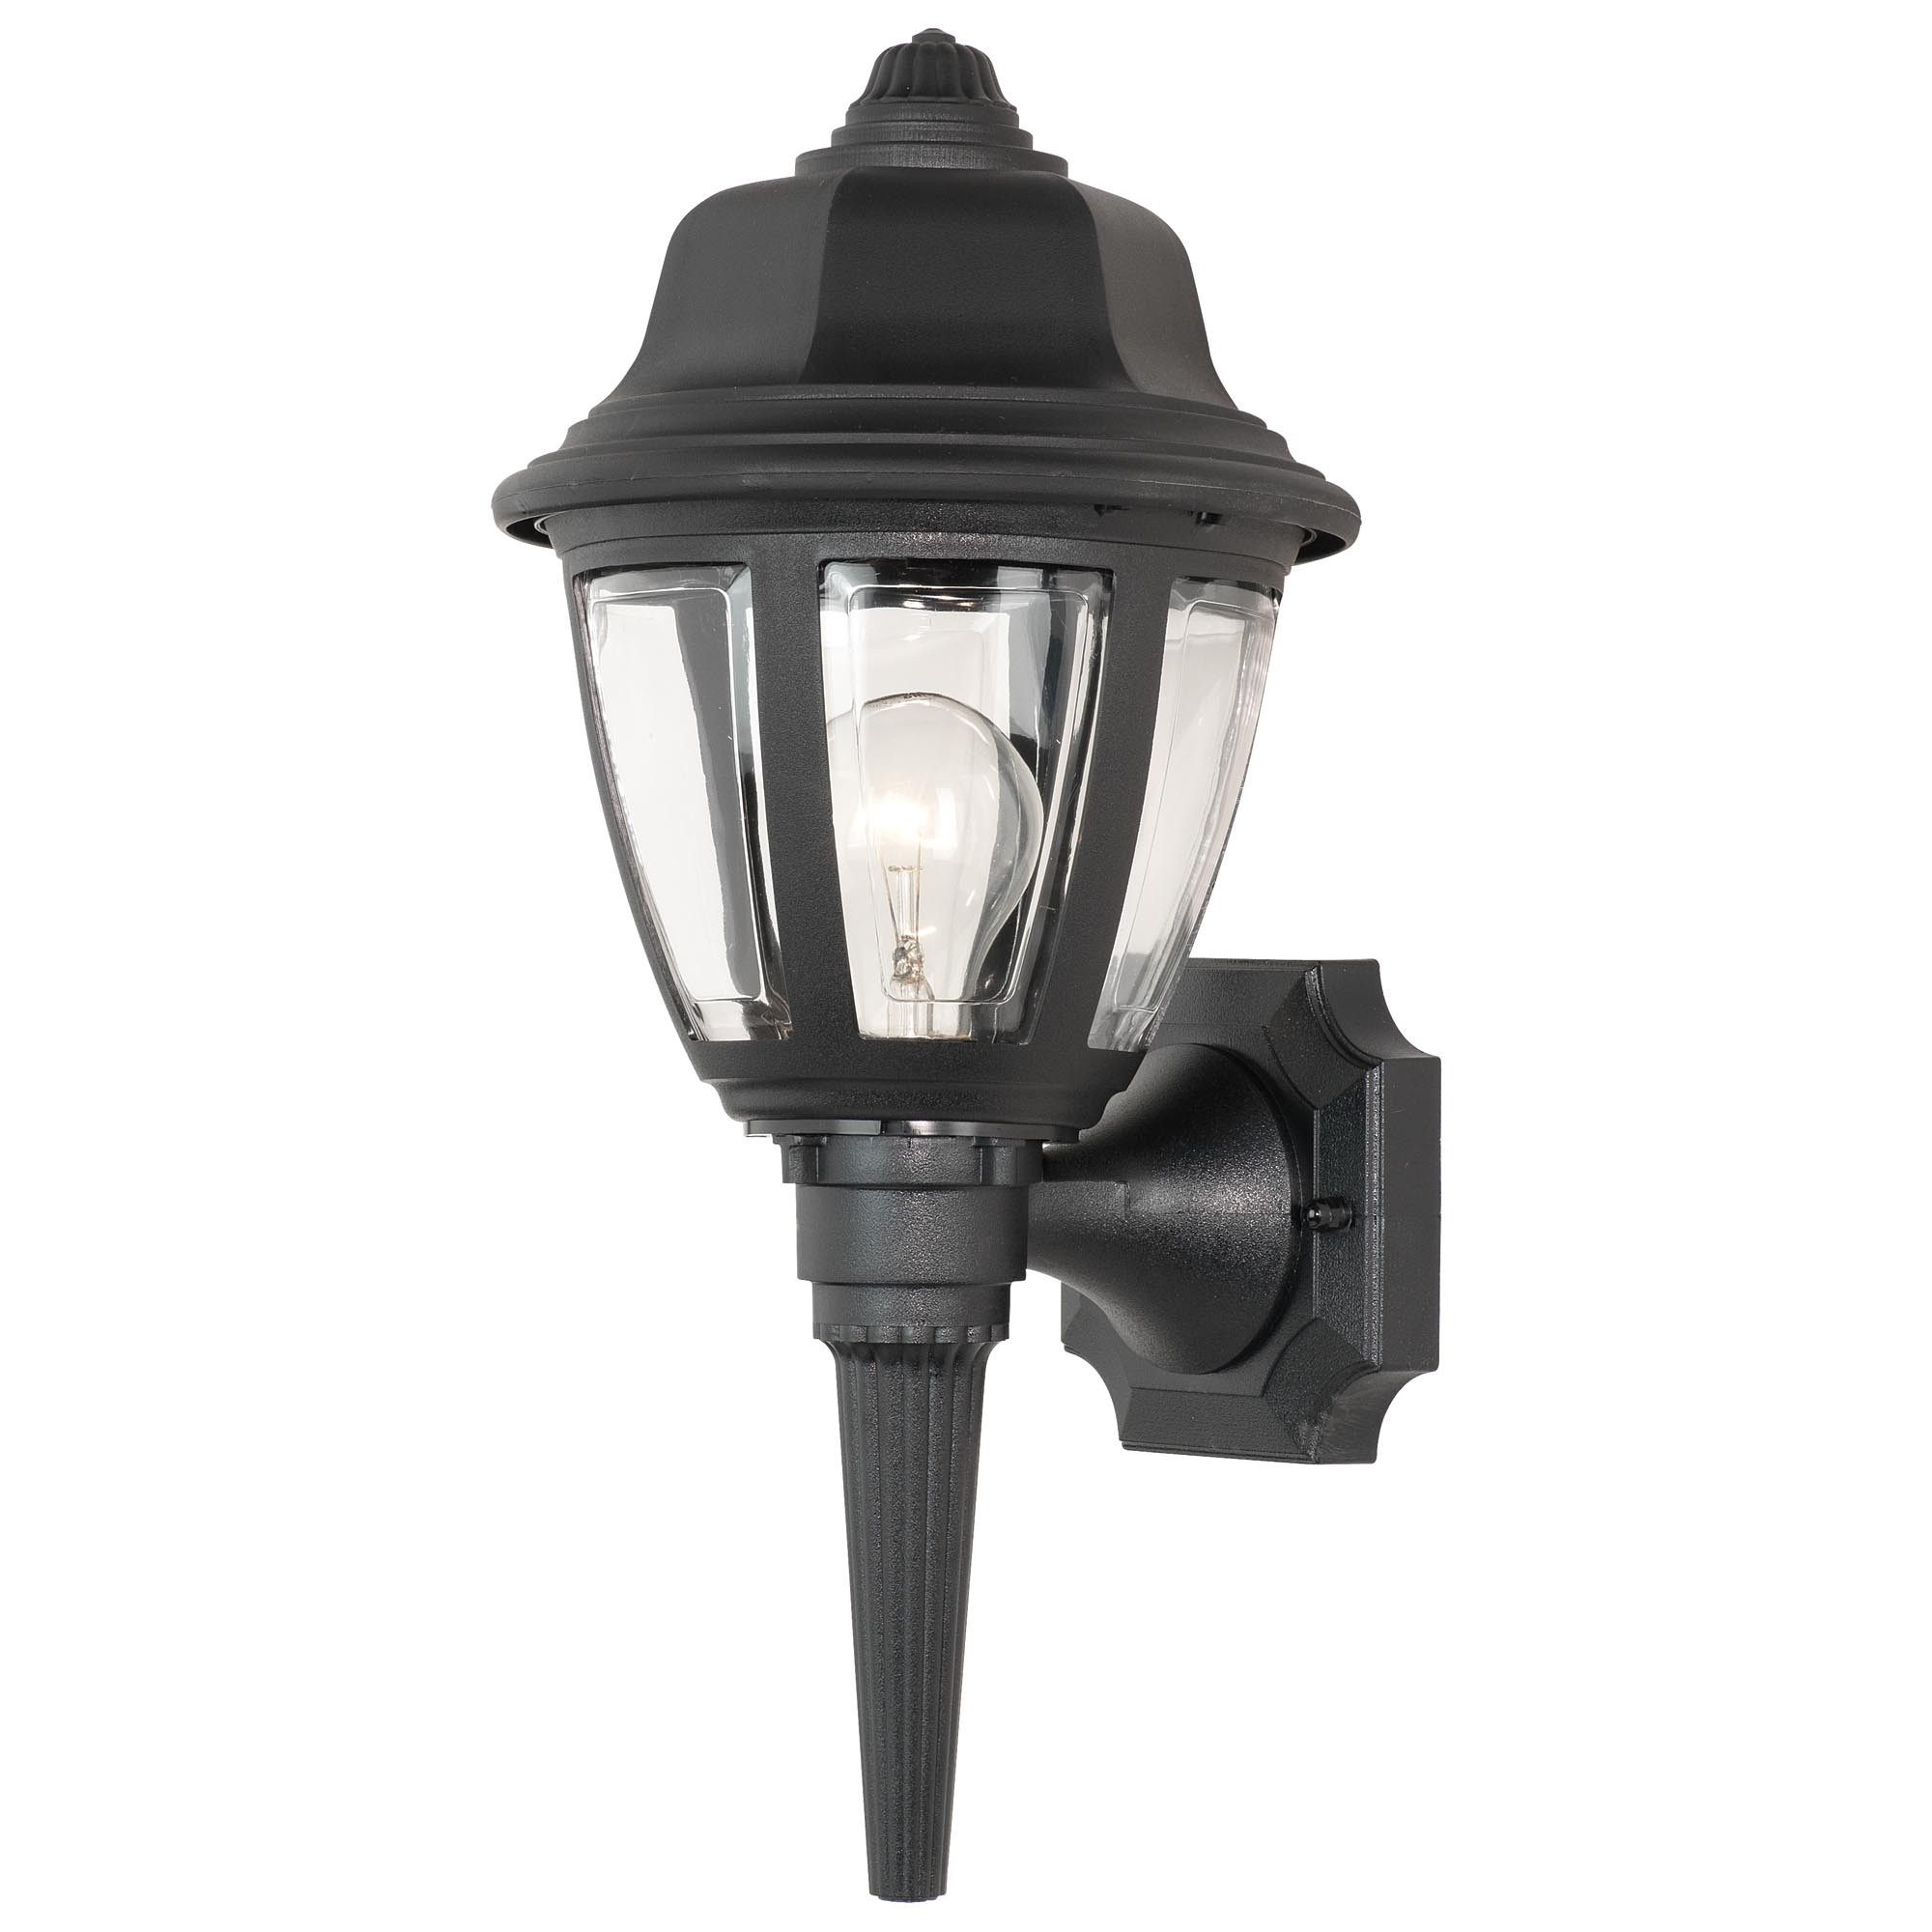 Preferred Plastic Lanterns Outdoor Lights Light Splendid Black Wall Lantern With Regard To Outdoor Plastic Lanterns (View 2 of 20)